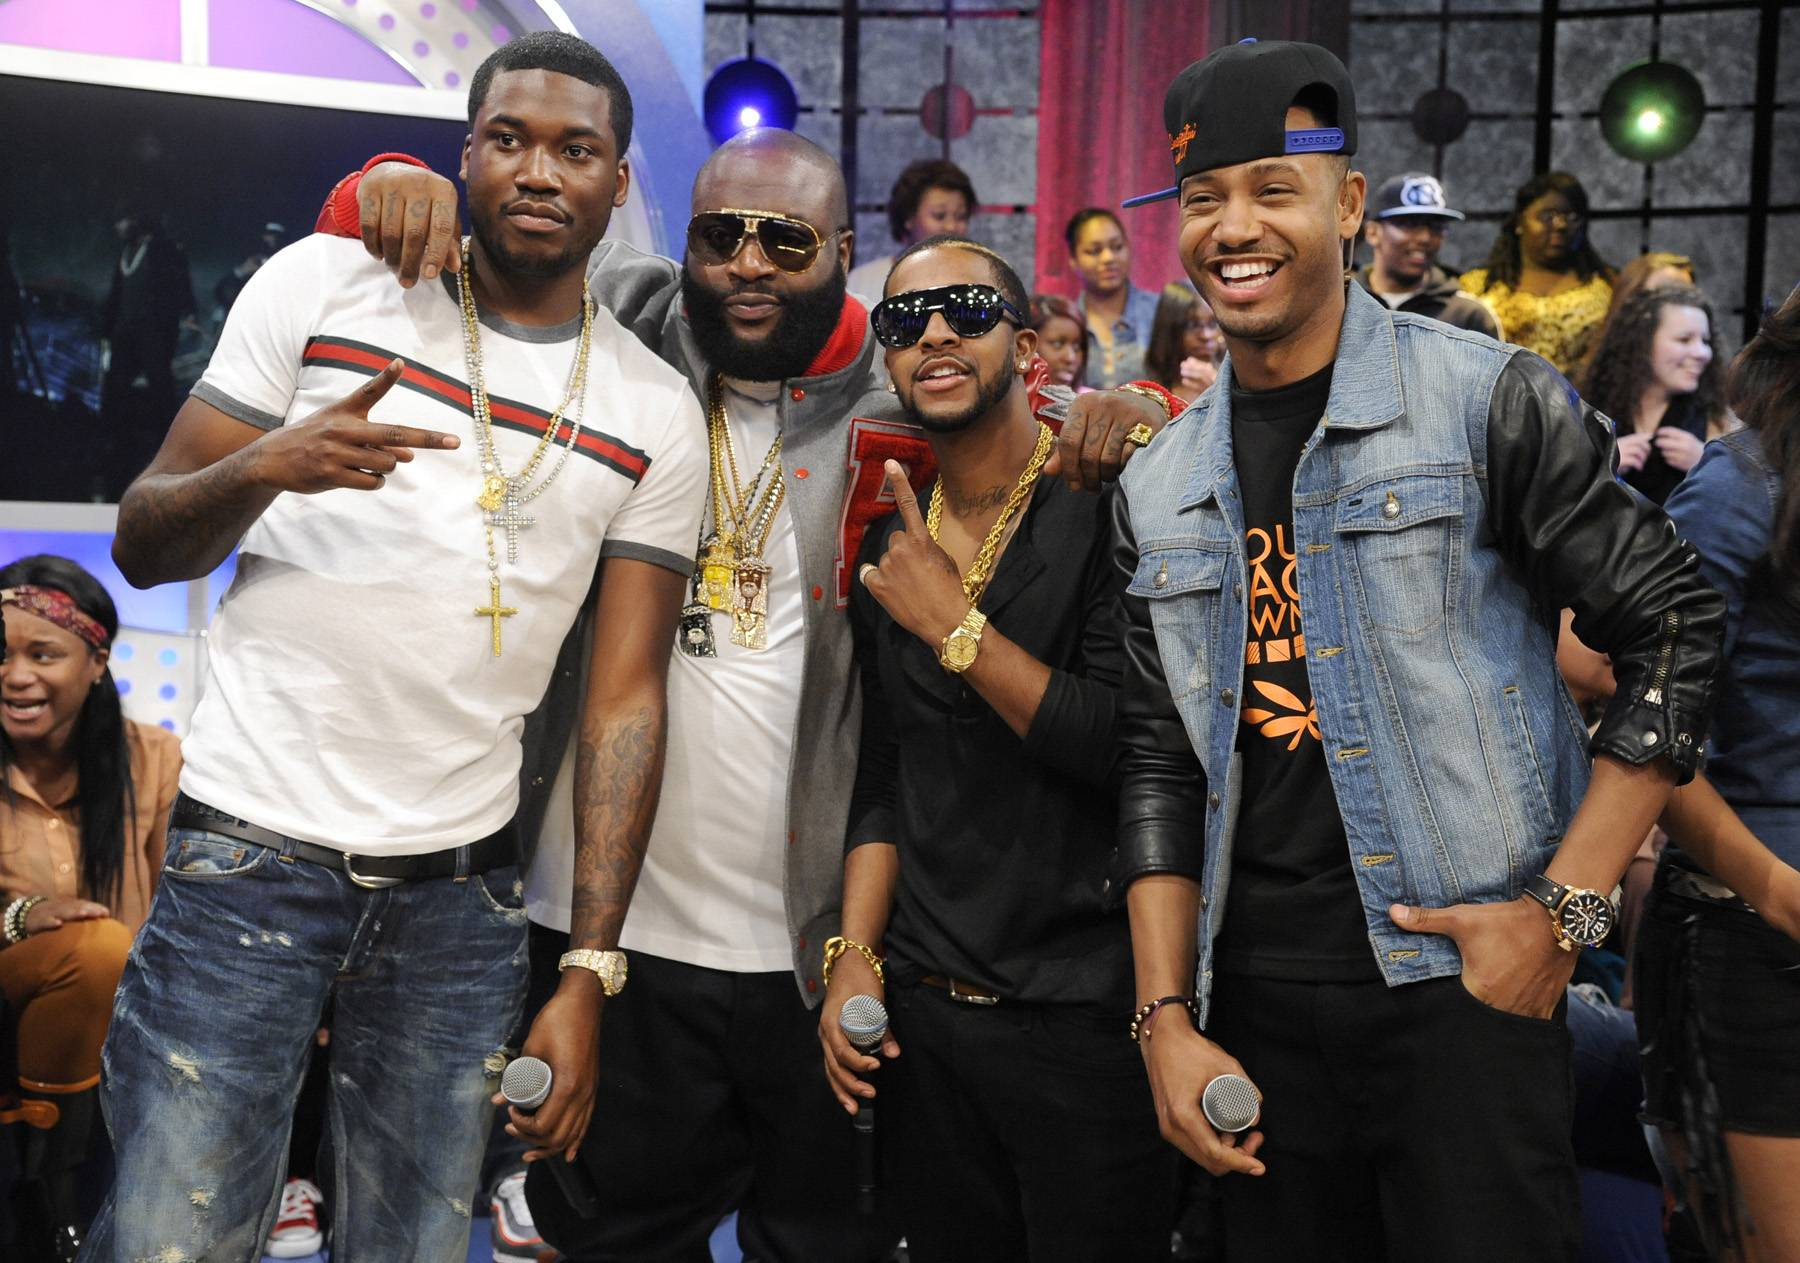 Get It Together - MMG members Meek Mill, Rick Ross, Omarion and host Terrence J at 106 & Park, May 2, 2012. (Photo: John Ricard/BET)